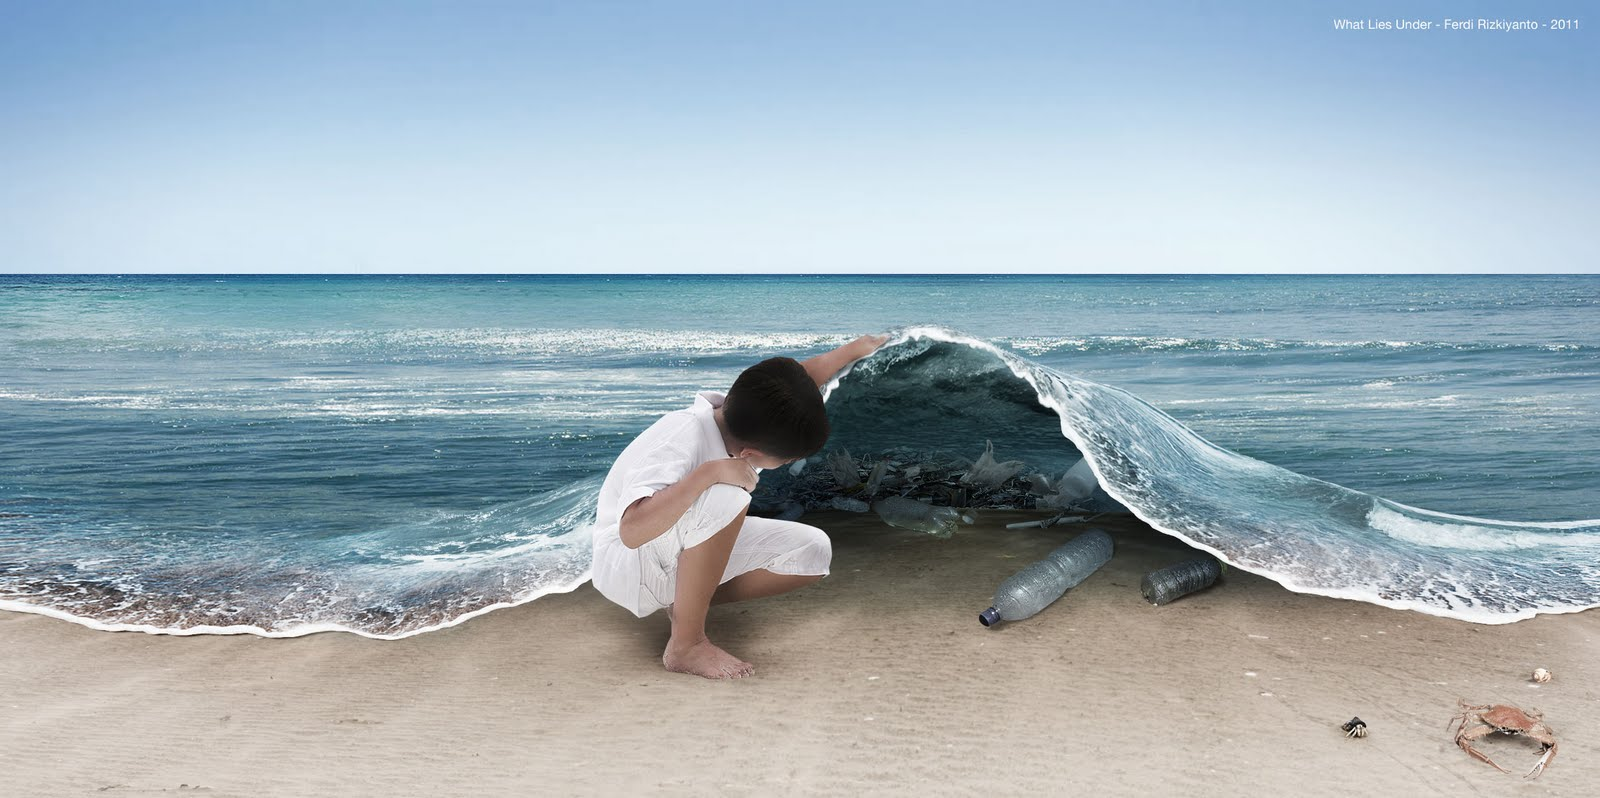 What Lies Under, rubbish under sea, child lifts sea